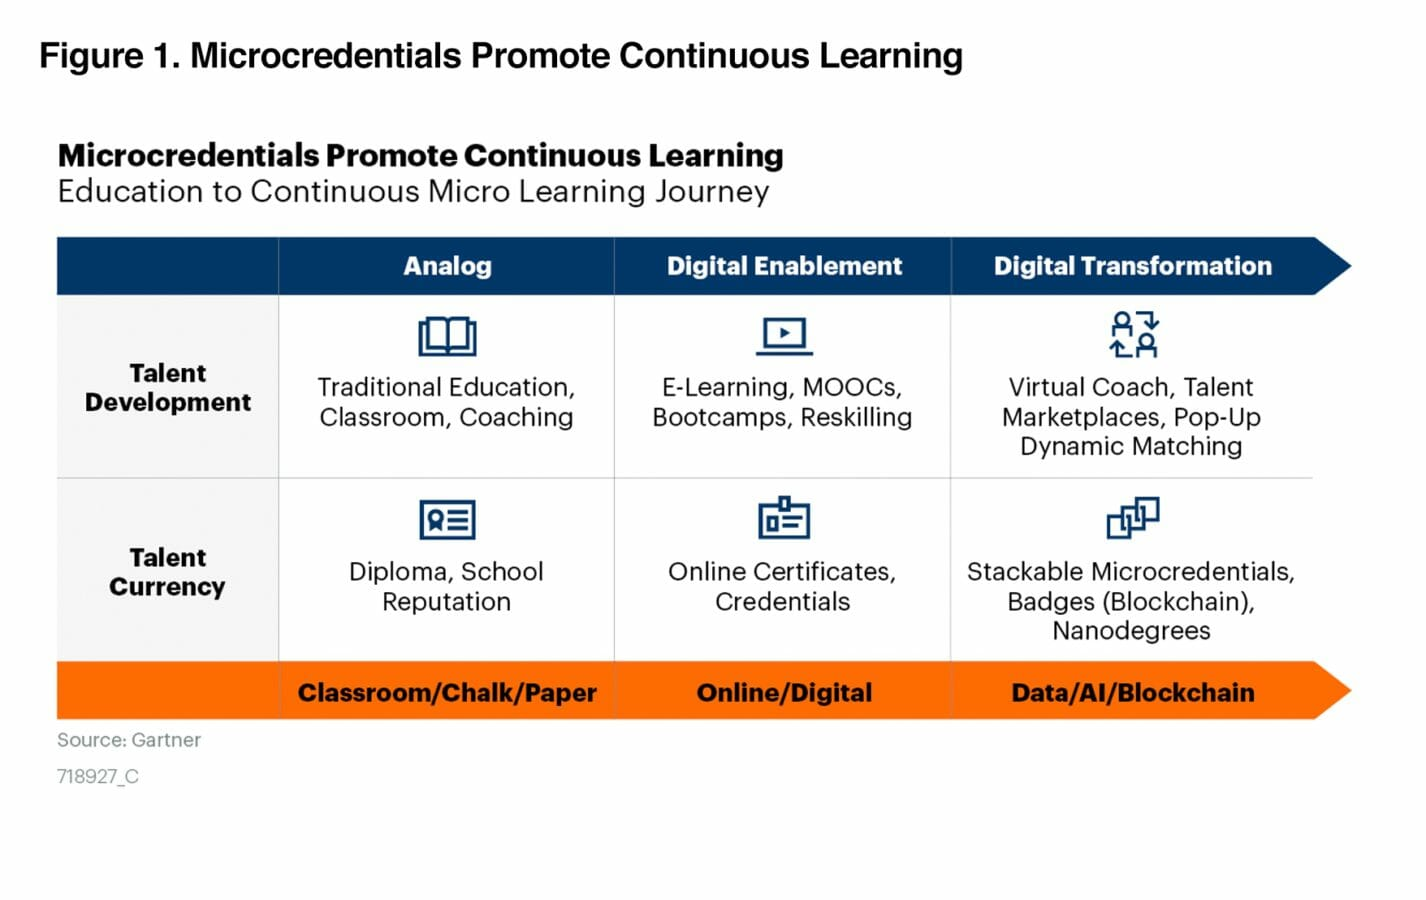 Chart showing how microcredentials promote continuous learning